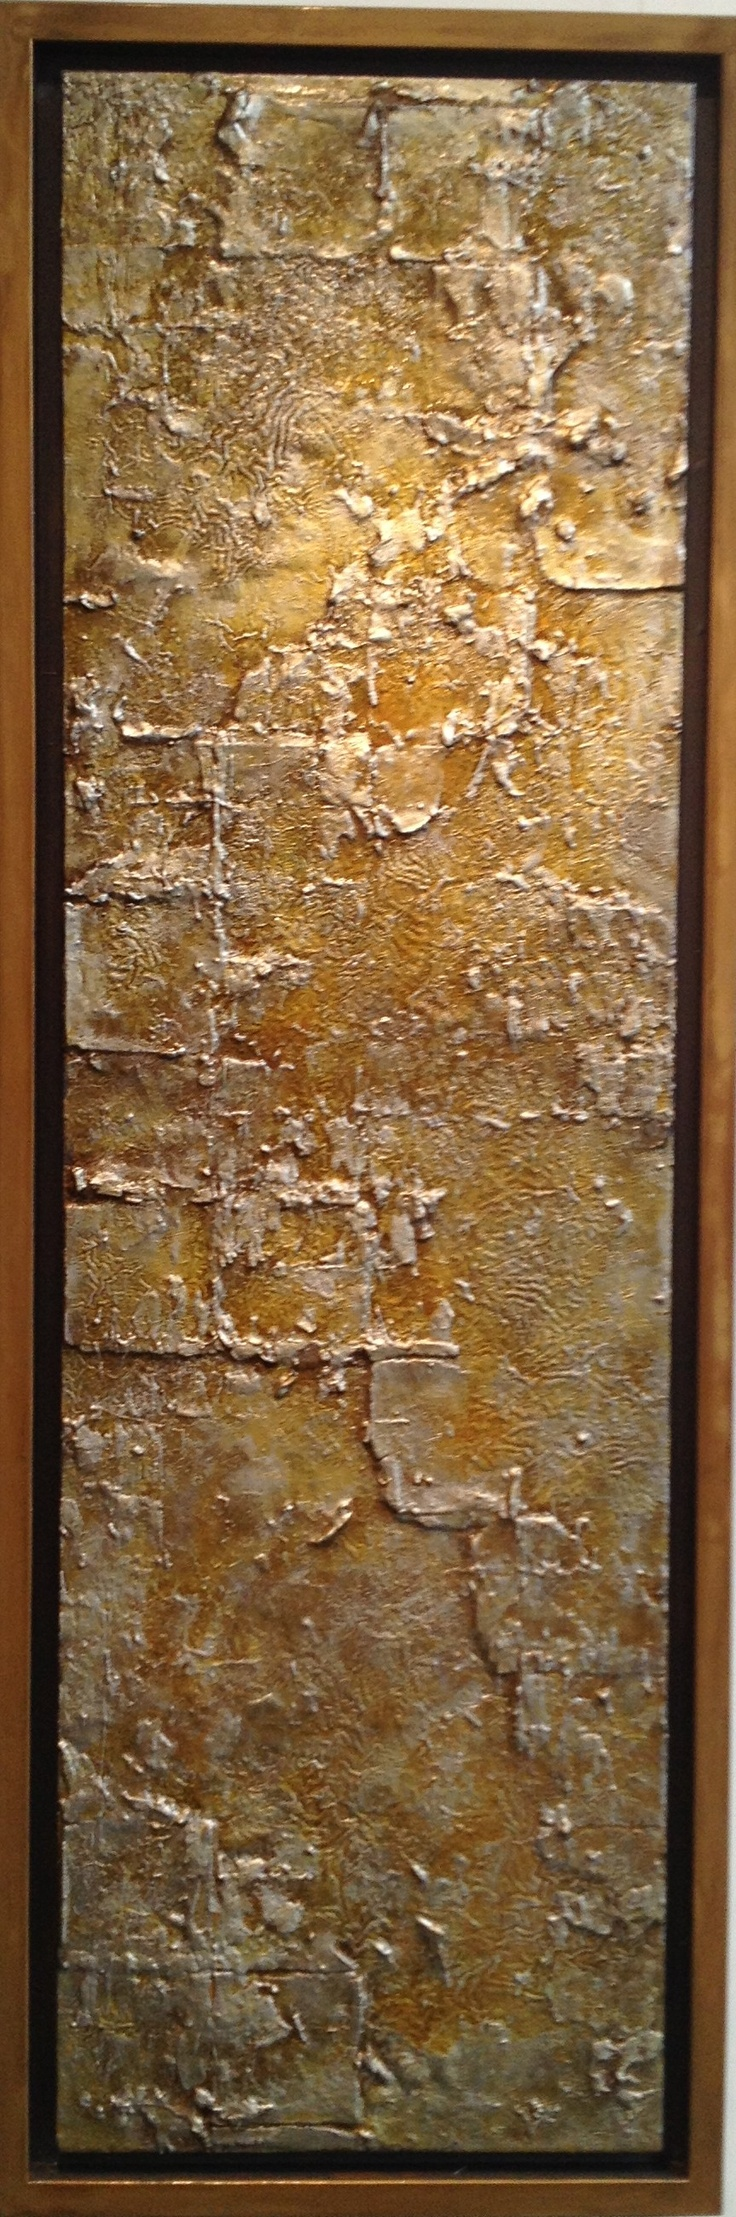 GREAT TEXTURE ON WOOD PANEL (PLYWOOD)  Mishin Fine Arts SF  Mixed Media on Wood Panel